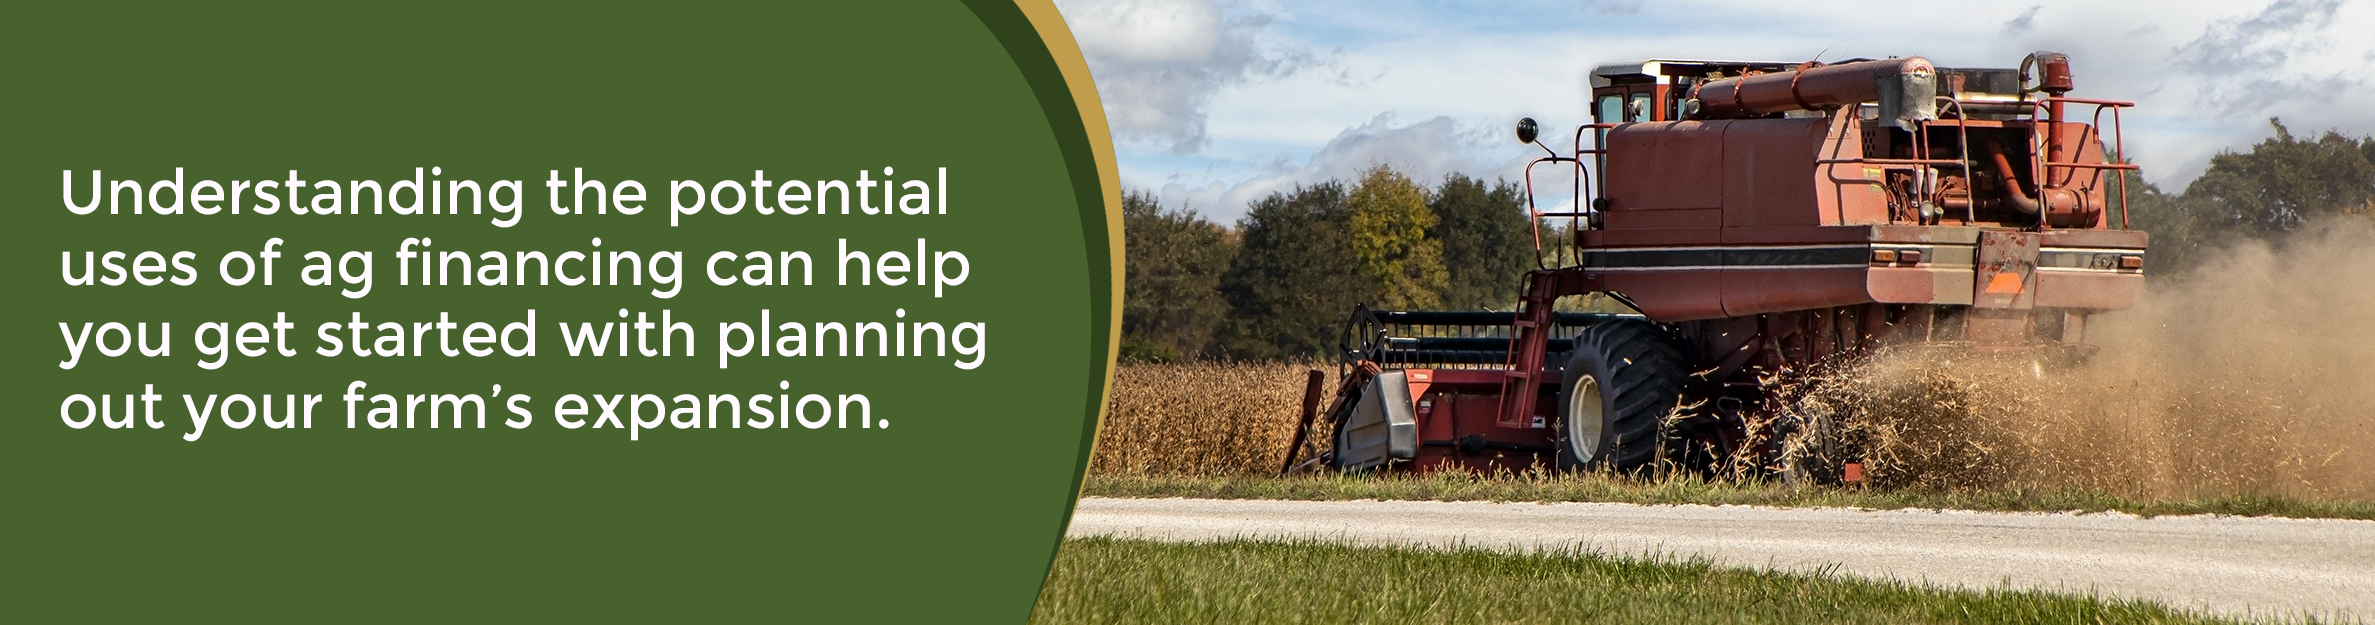 Understanding the potential uses of ag financing can help you get started with planning out your farm's expansion.